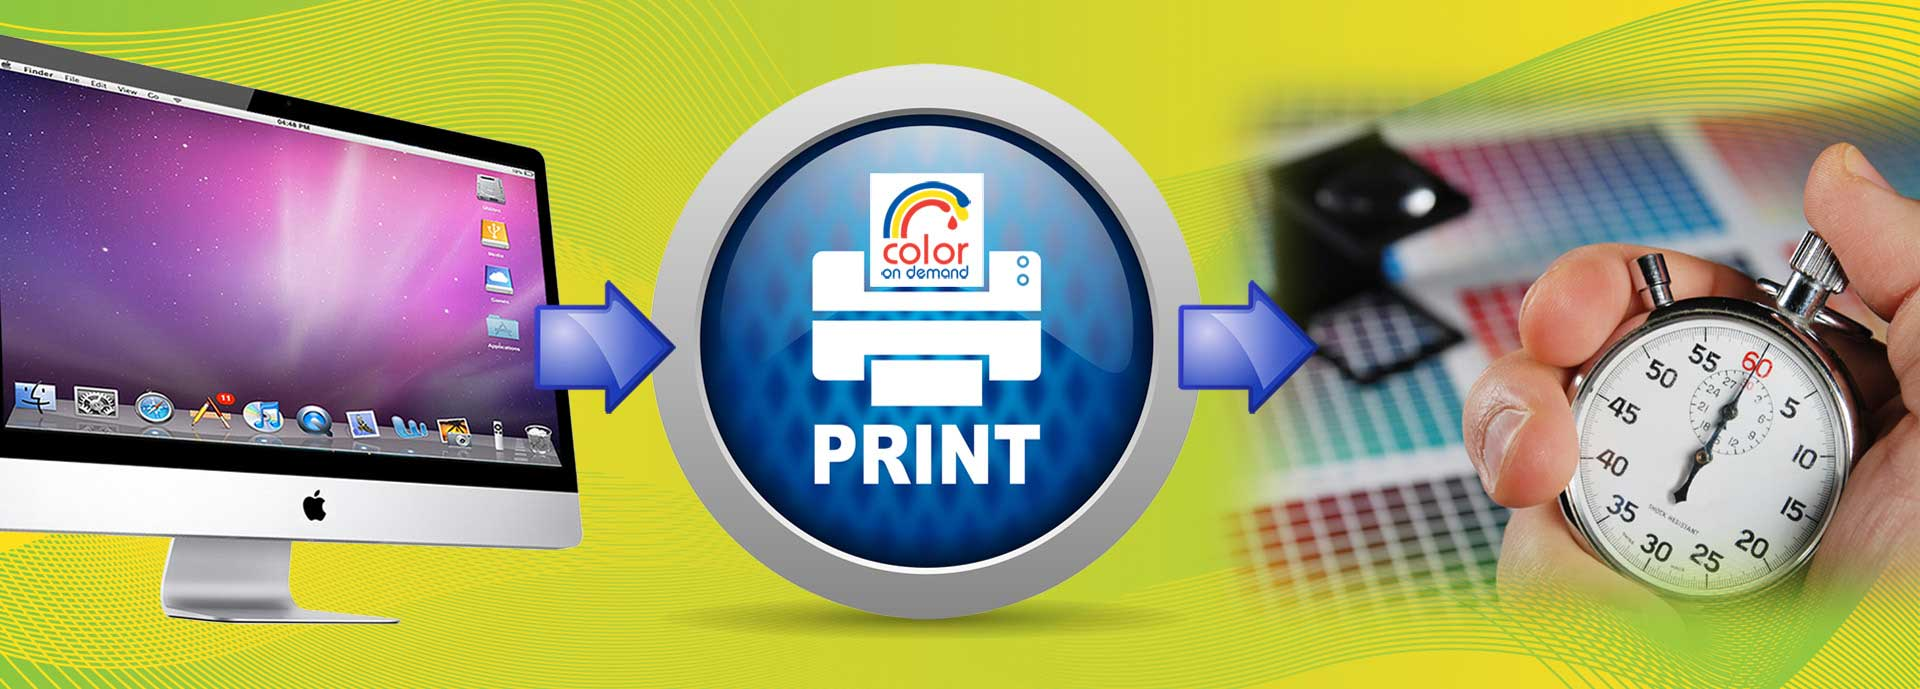 At Color on Demand Adelaide  print possibilities are endless!